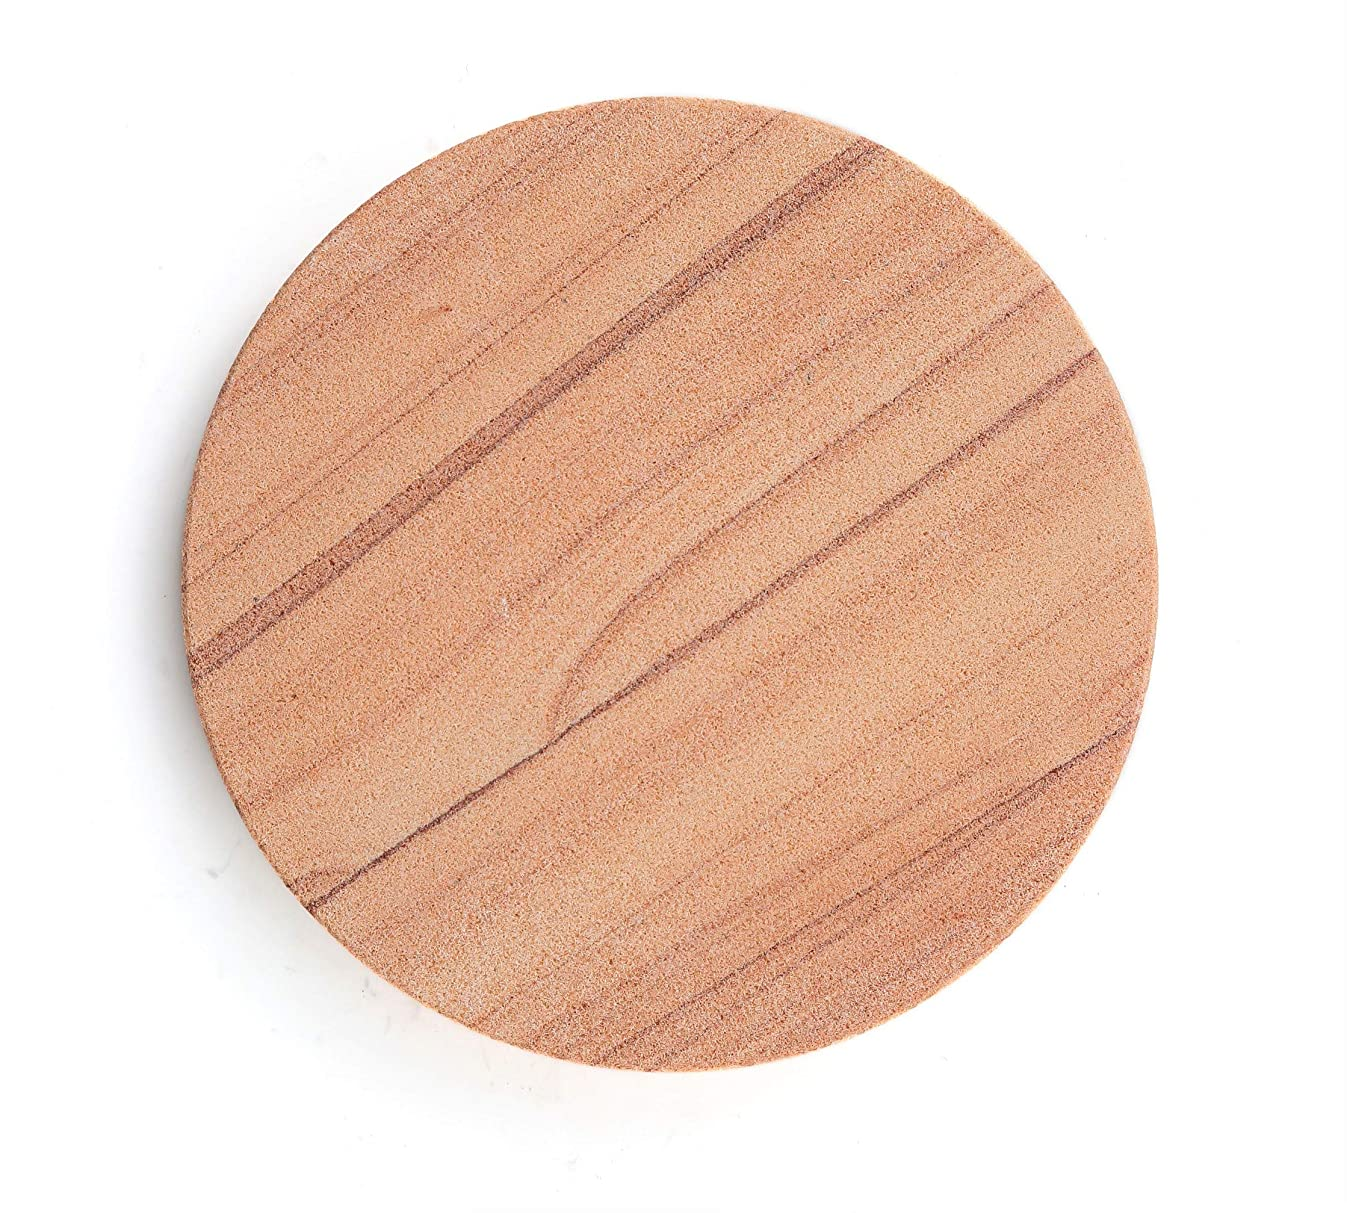 Thirstystone Brand-Cinnabar, Multicolor All Natural Sandstone-Durable Stone with Varying Patterns, Every Coaster is an Original, 4 inches,